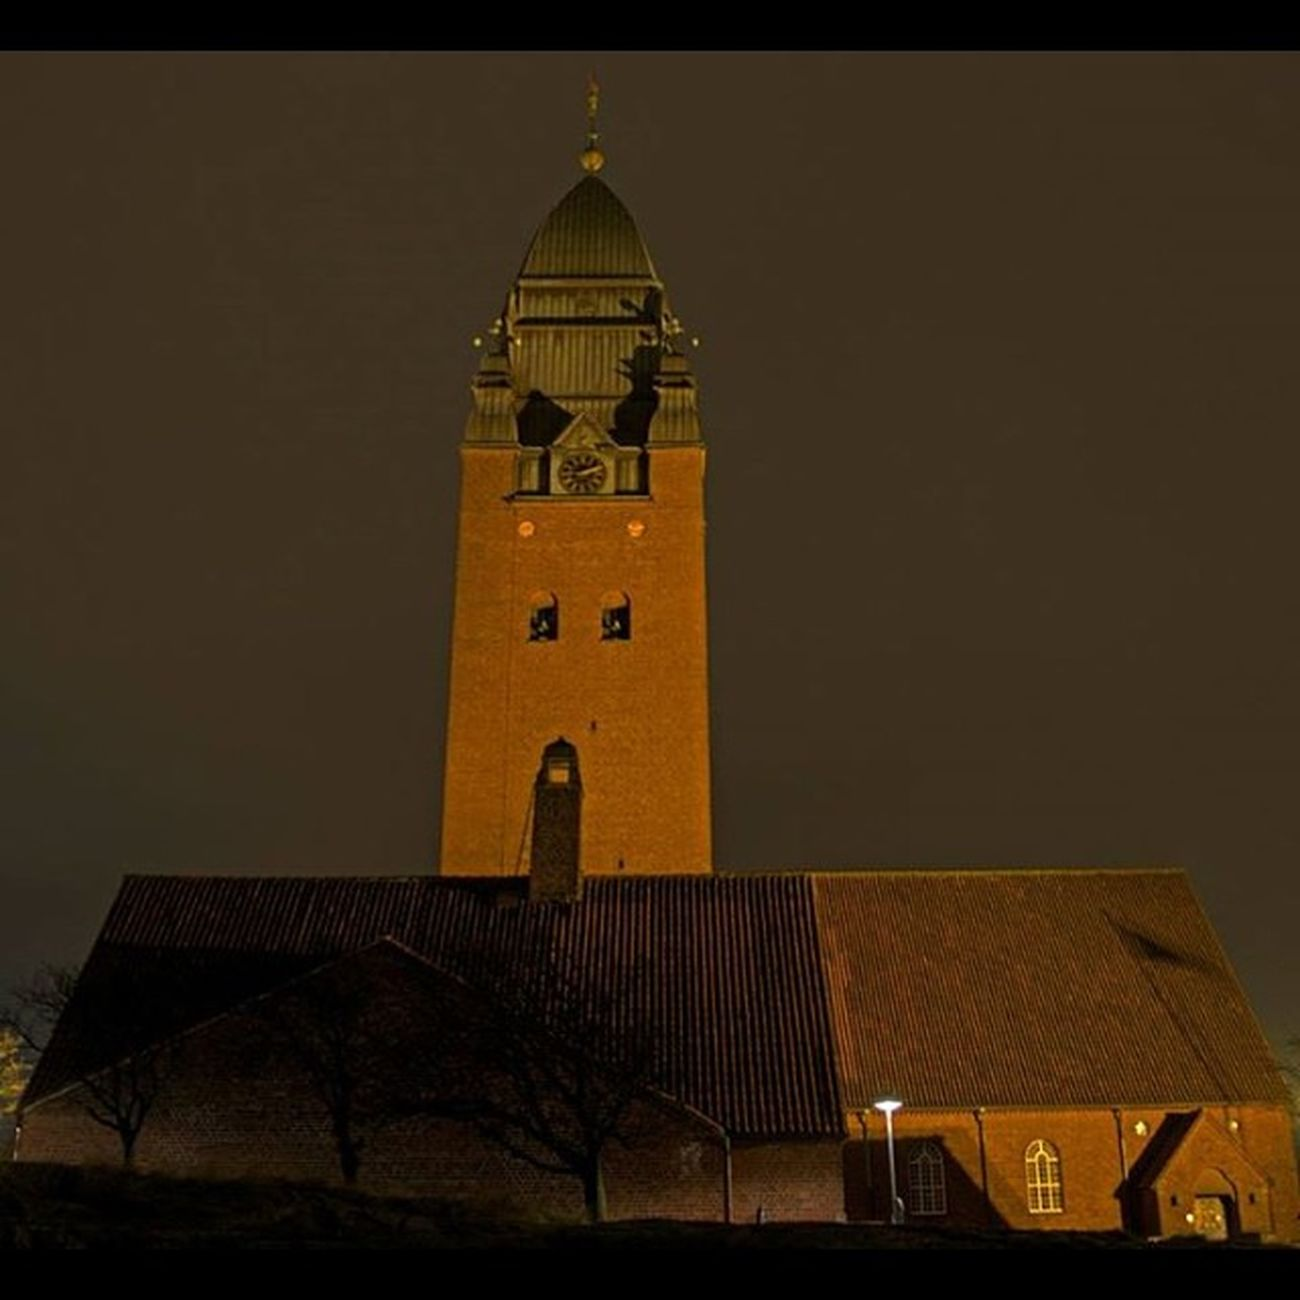 Masthuggskyrkan Stigberget Night Klocktorn torn tower kyrka church lights göteborg gothenburg old foto fotograf photo geo_tag photooftheday fotonavsjoskum majorna sweden svergie